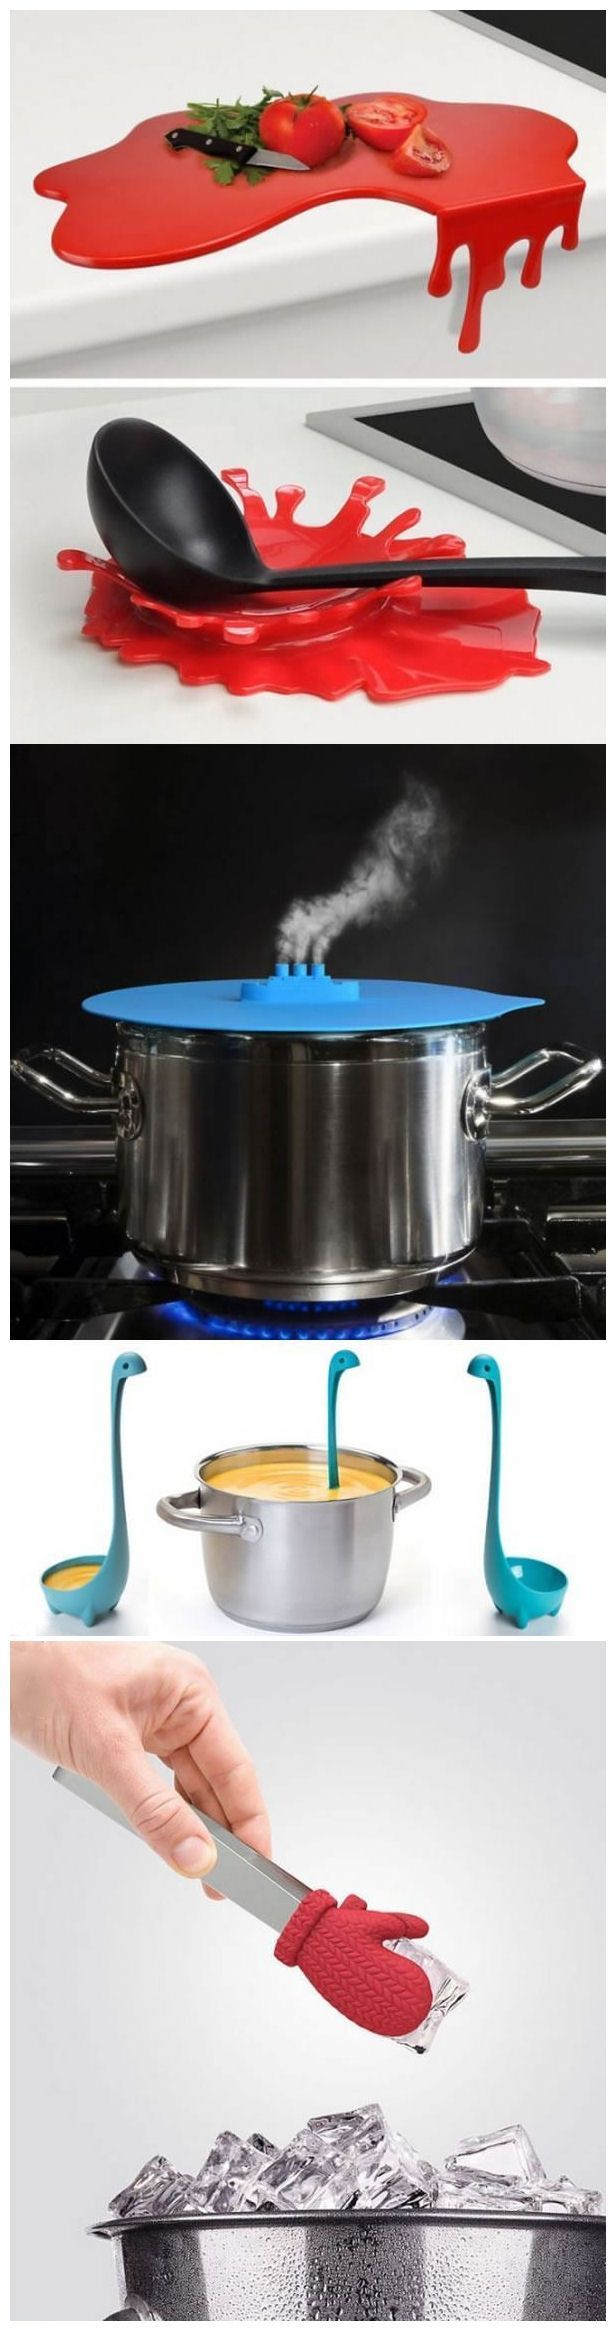 Cool & Clever Kitchen Gadgets ❤️︎                                                                                                                                                      More